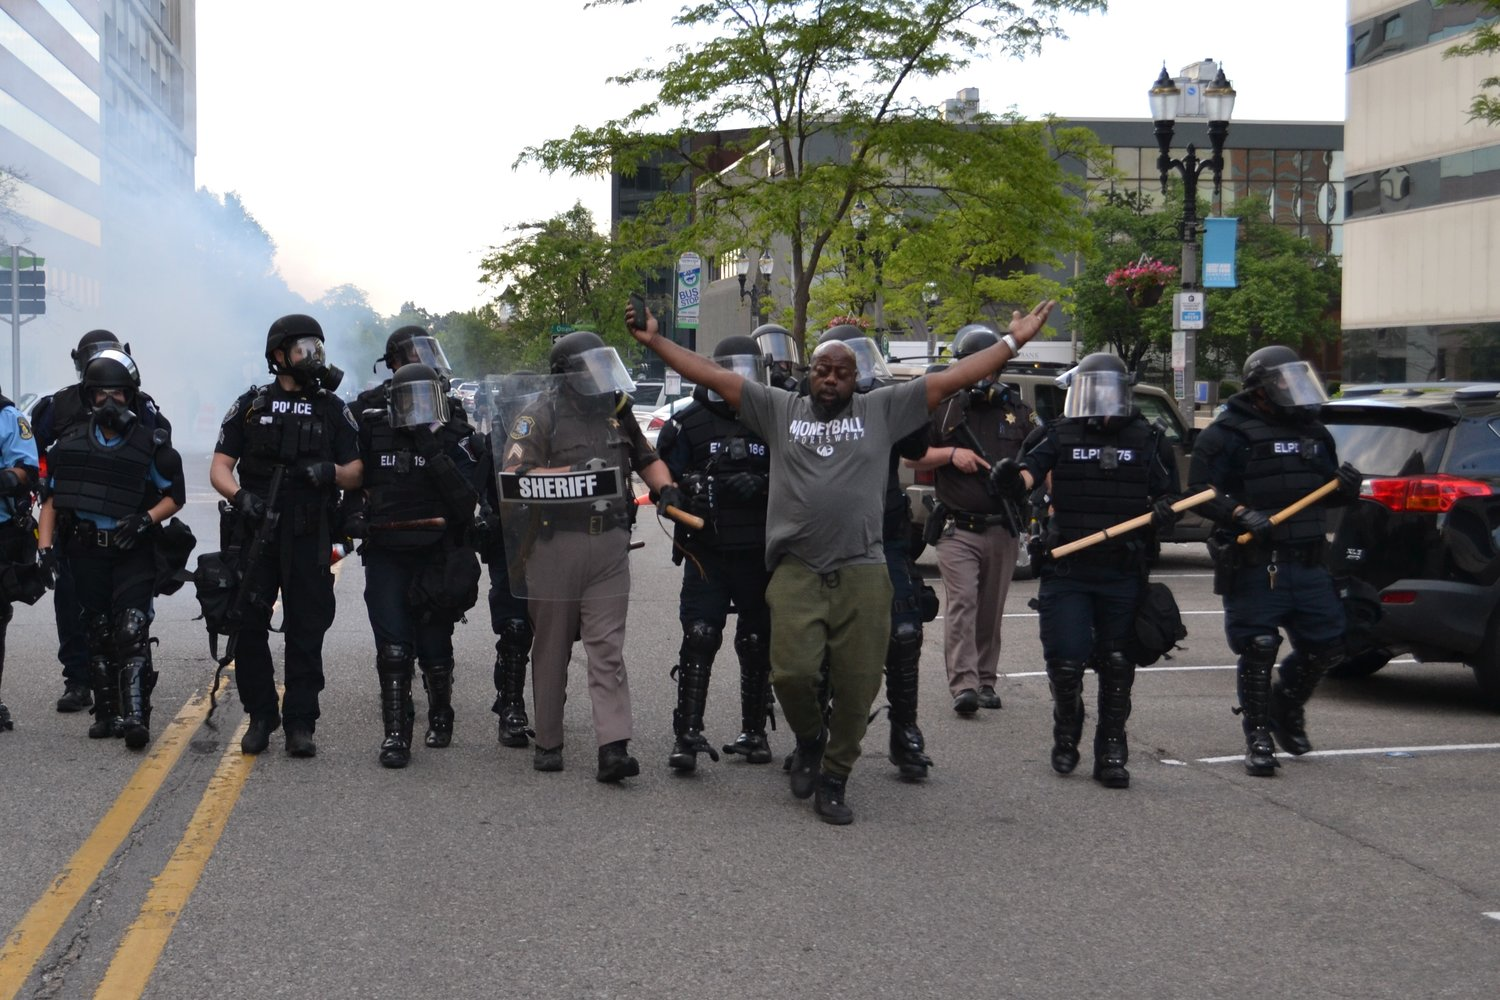 A man is pushed along by police.